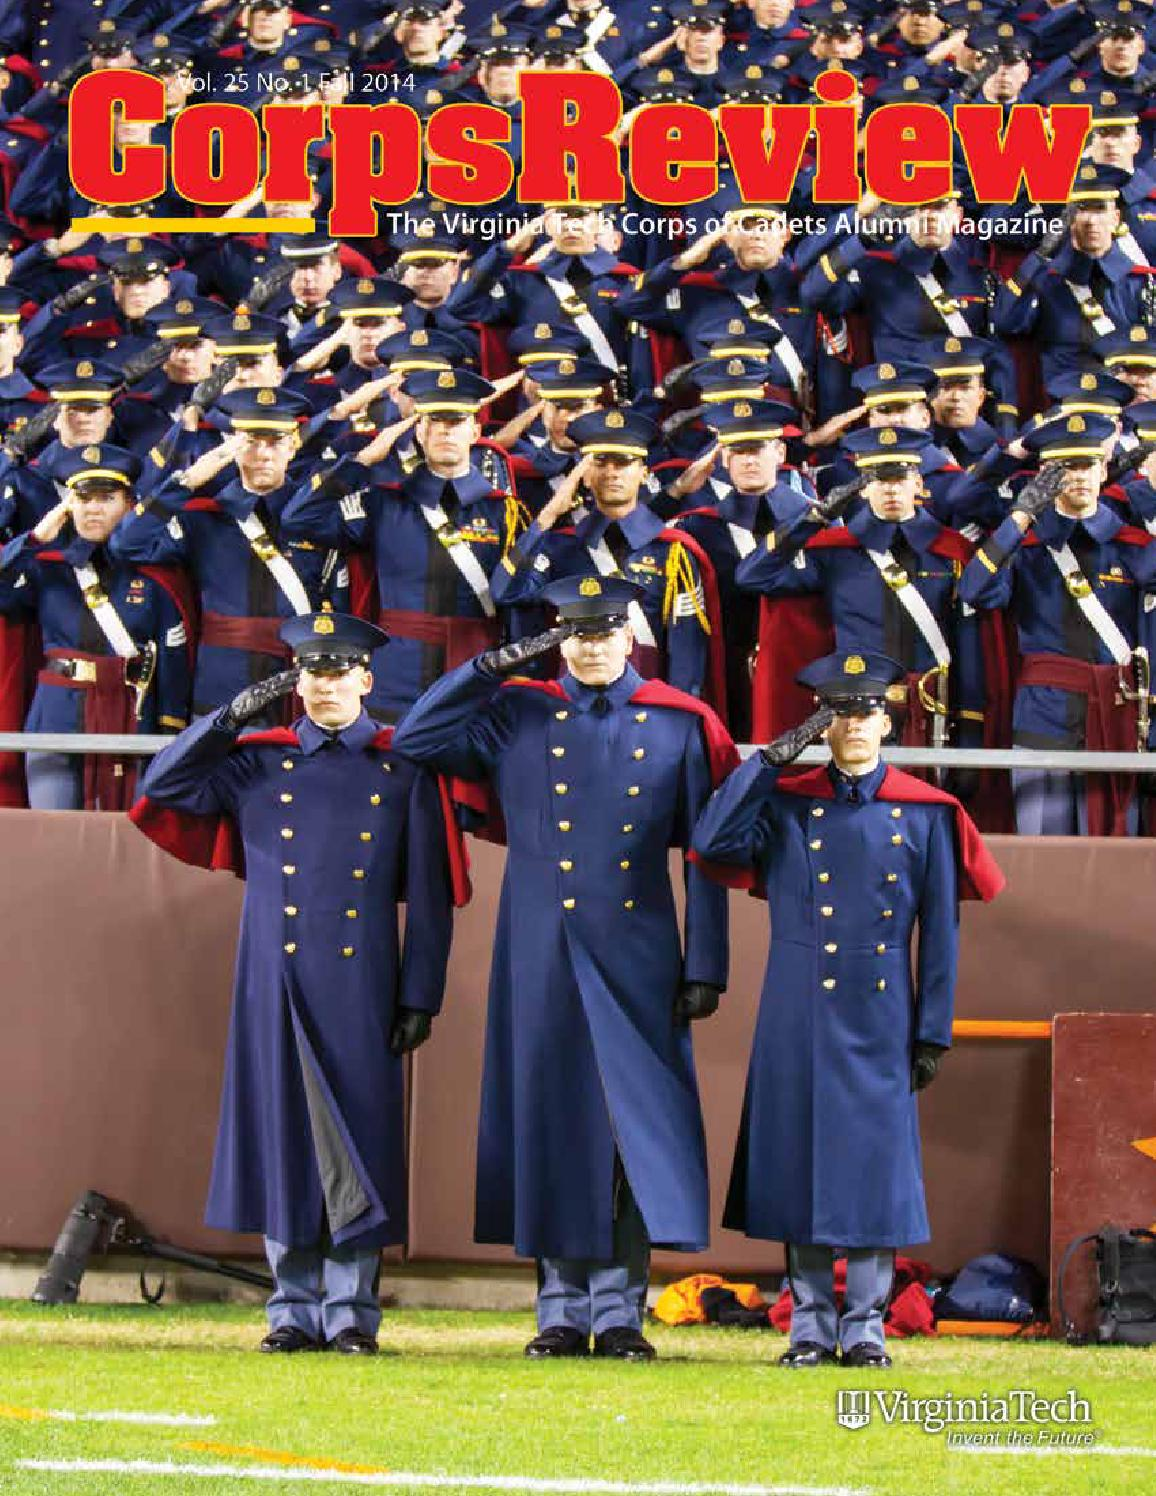 corps review summer 2016 by virginia tech corps of cadets alumni corps review vol 25 no 1 fall 2014